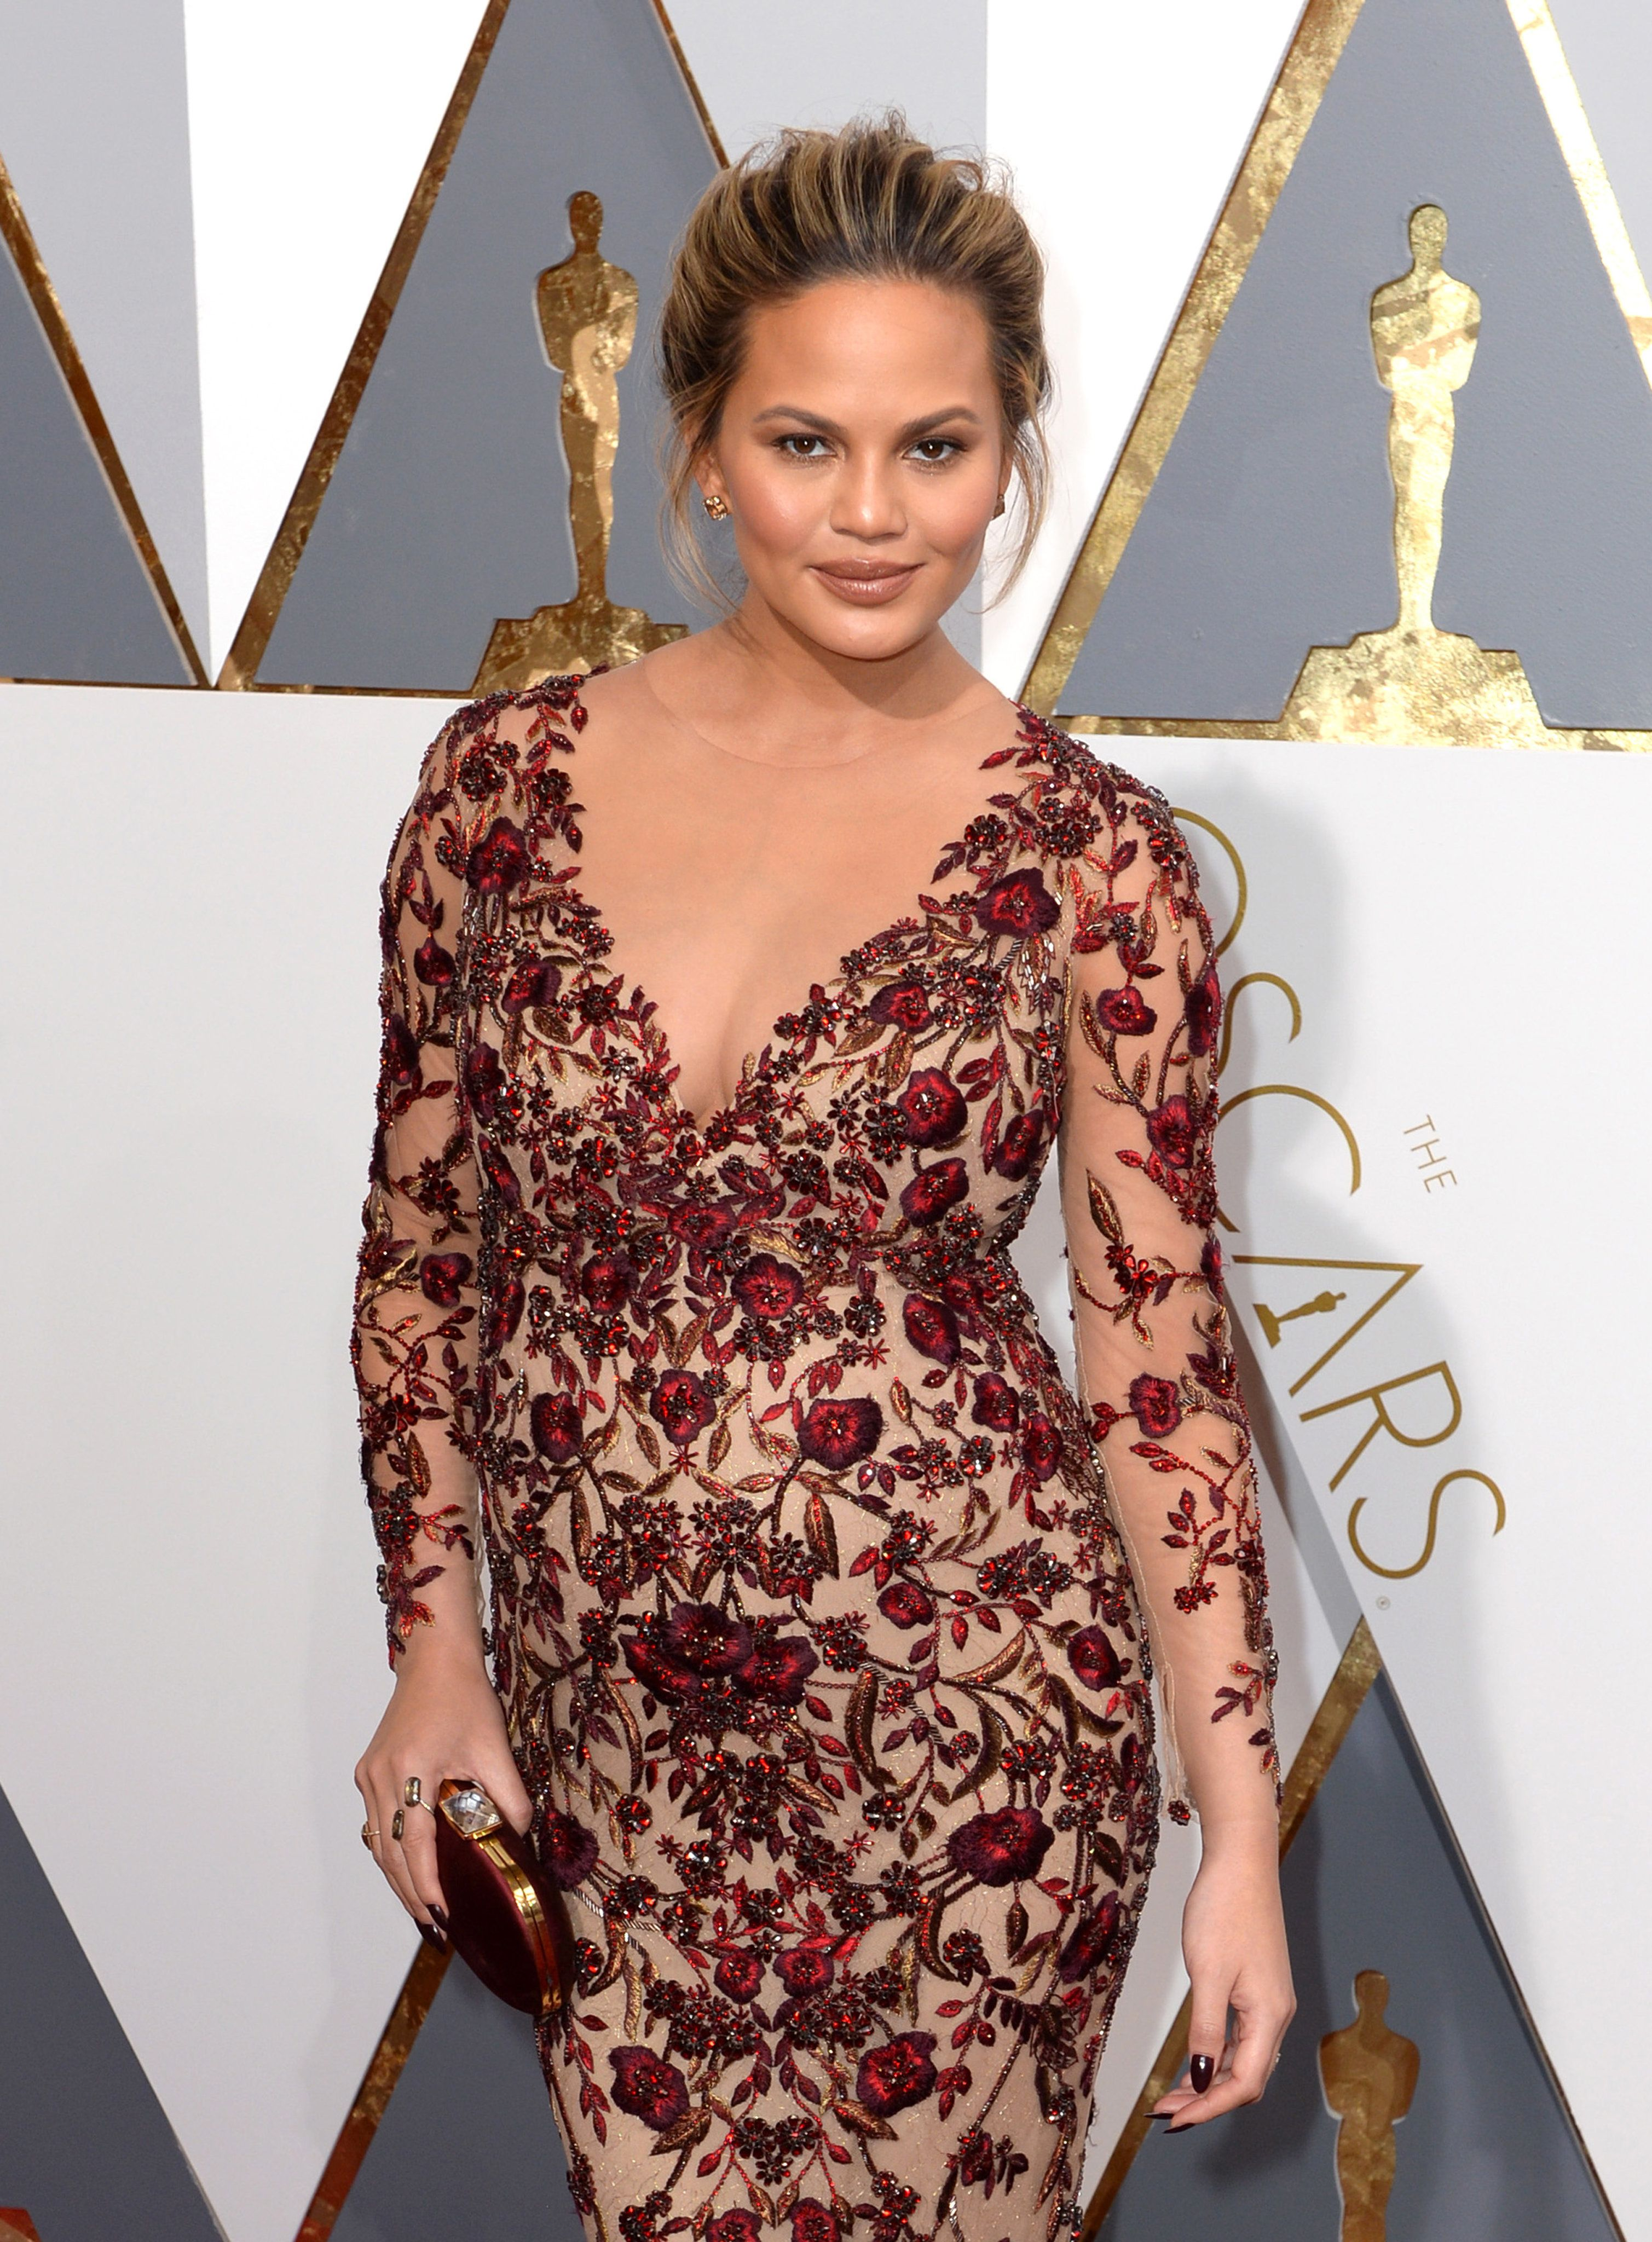 'This Is My New Body': Chrissy Teigen Shares Video Of Stretch Marks After Having Second